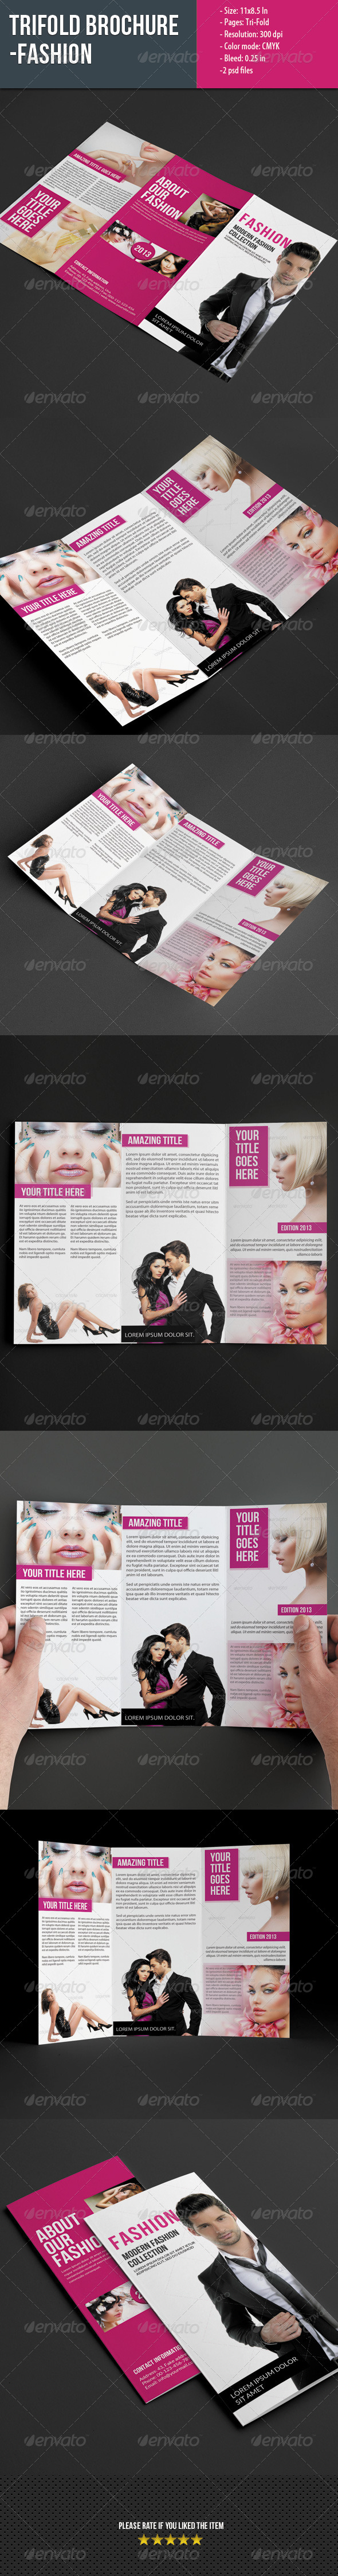 GraphicRiver Trifold Brochure for Fashion 5548622